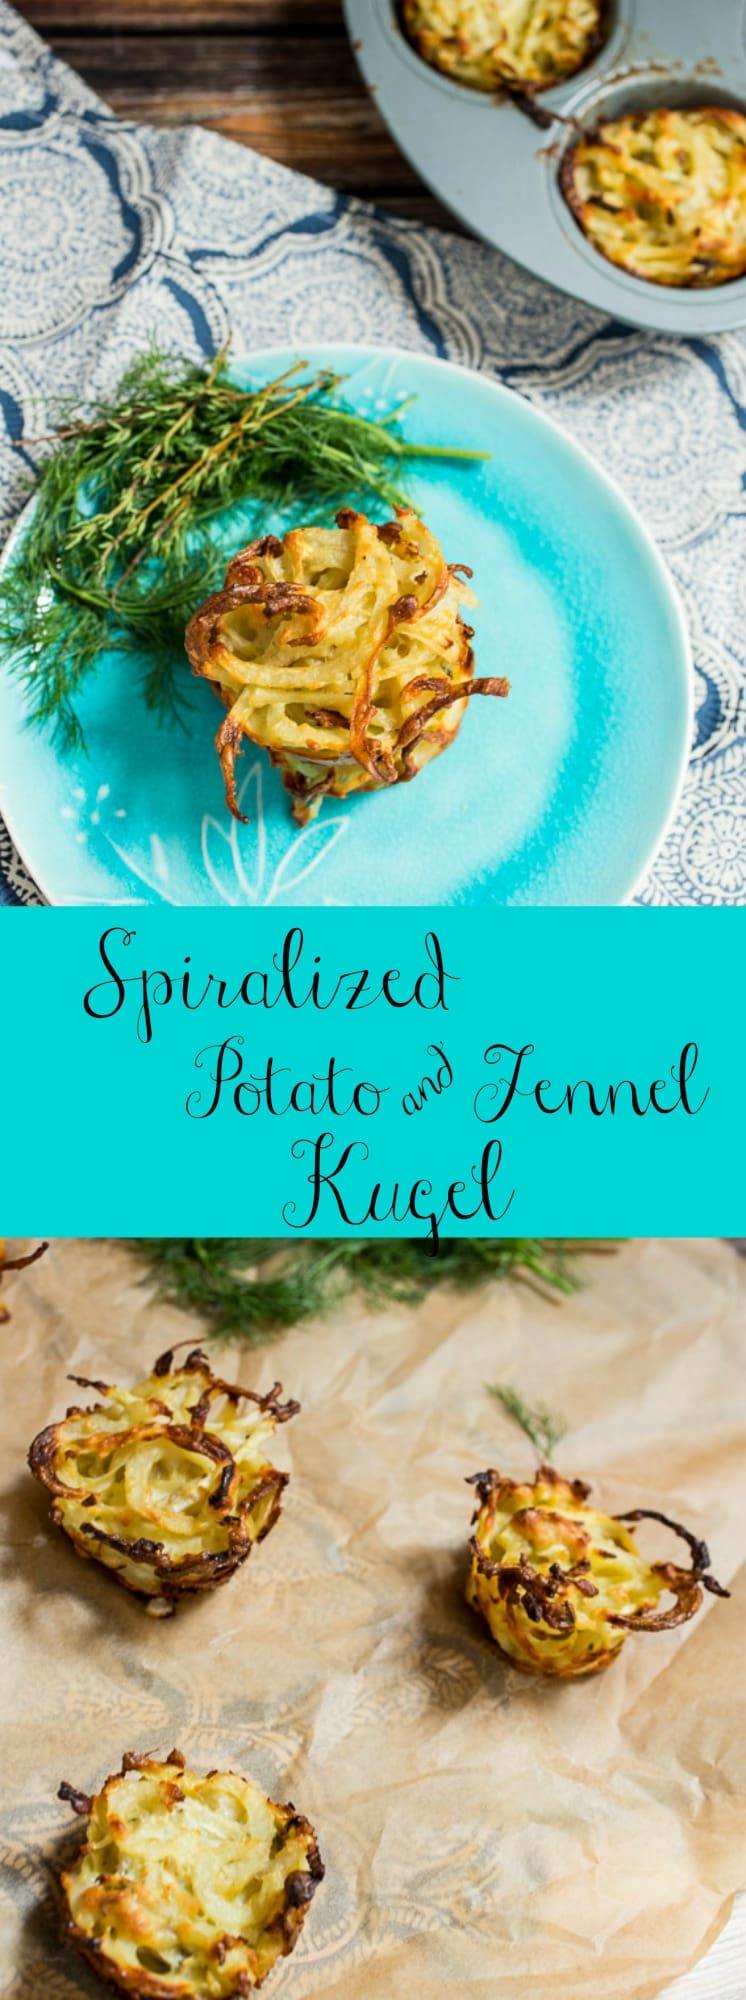 Spiralized Potato and Fennel Kugel